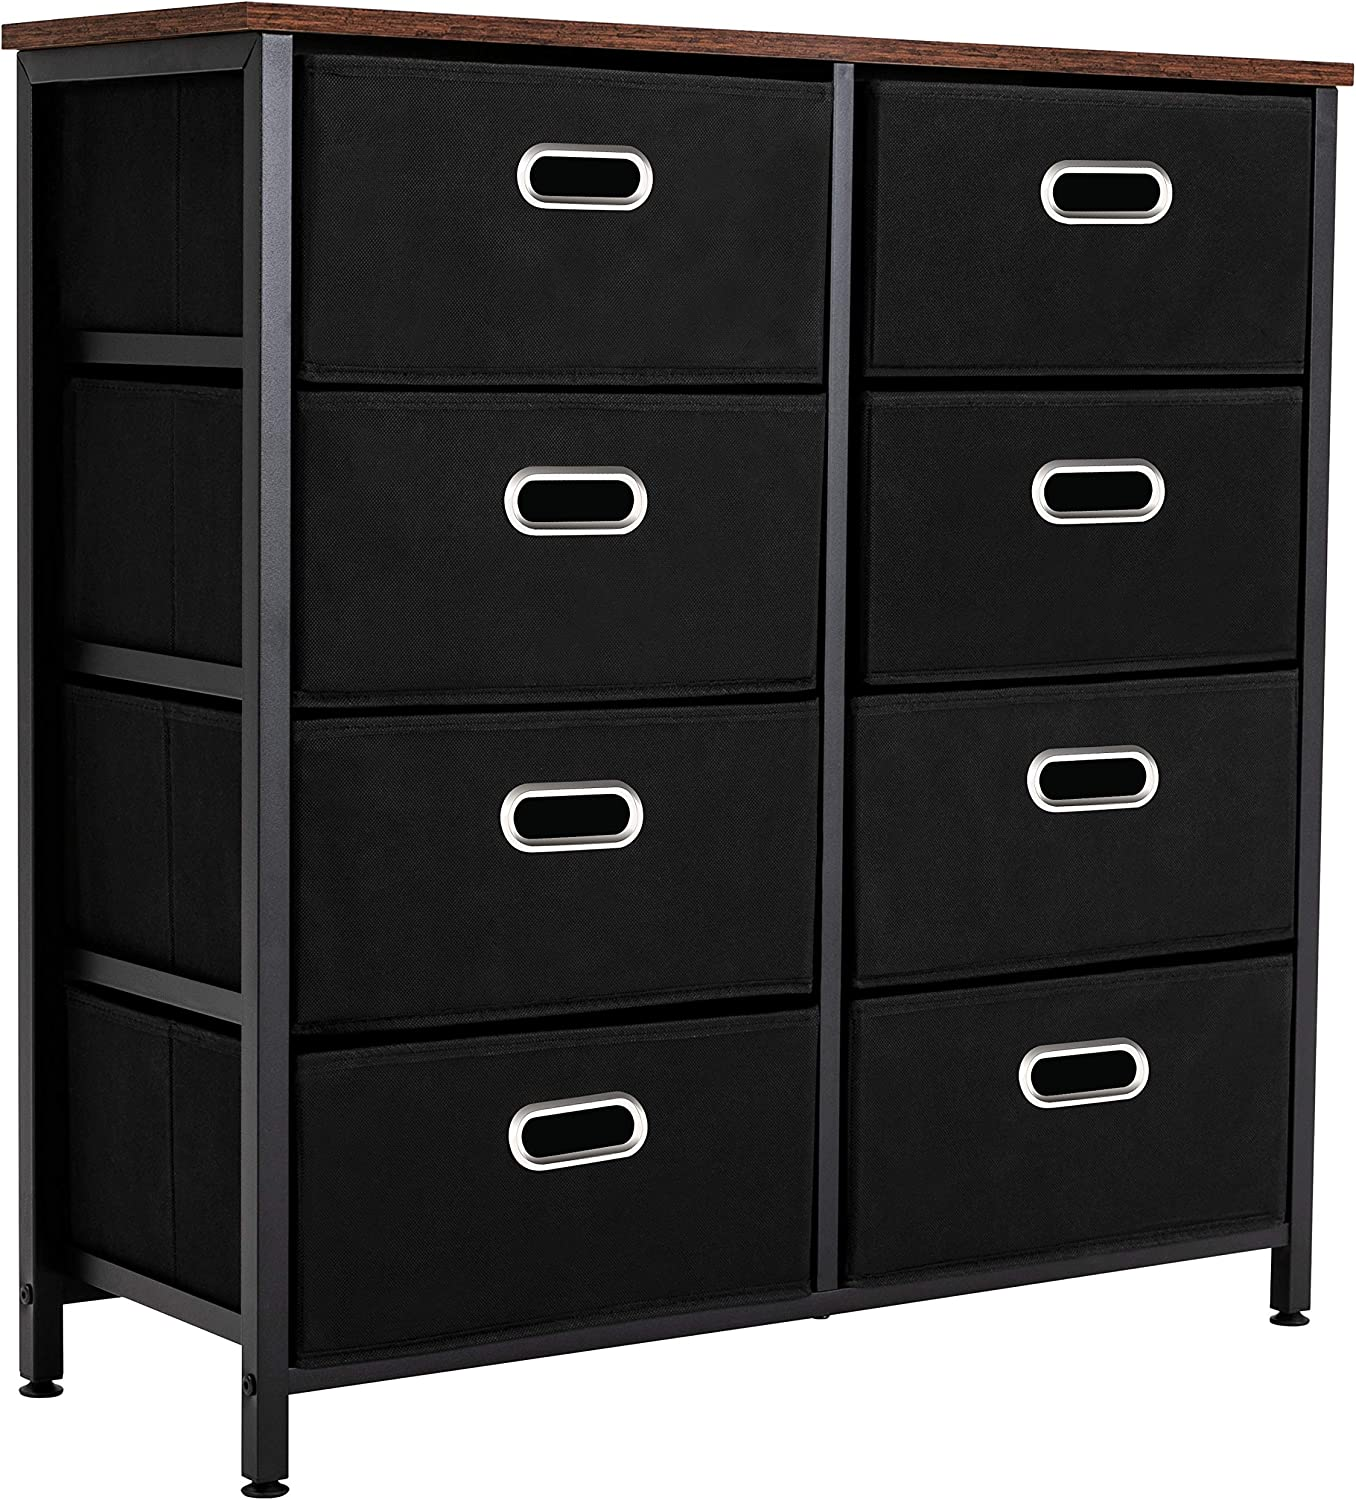 8 Drawer Dresser, Dressers for Bedroom,Chest of Drawers, Dresser Storage Tower,Closet Organizers and Storage,Easy Pull Fabric Drawers,Sturdy Metal Frame,Rustic Wood Top, Black